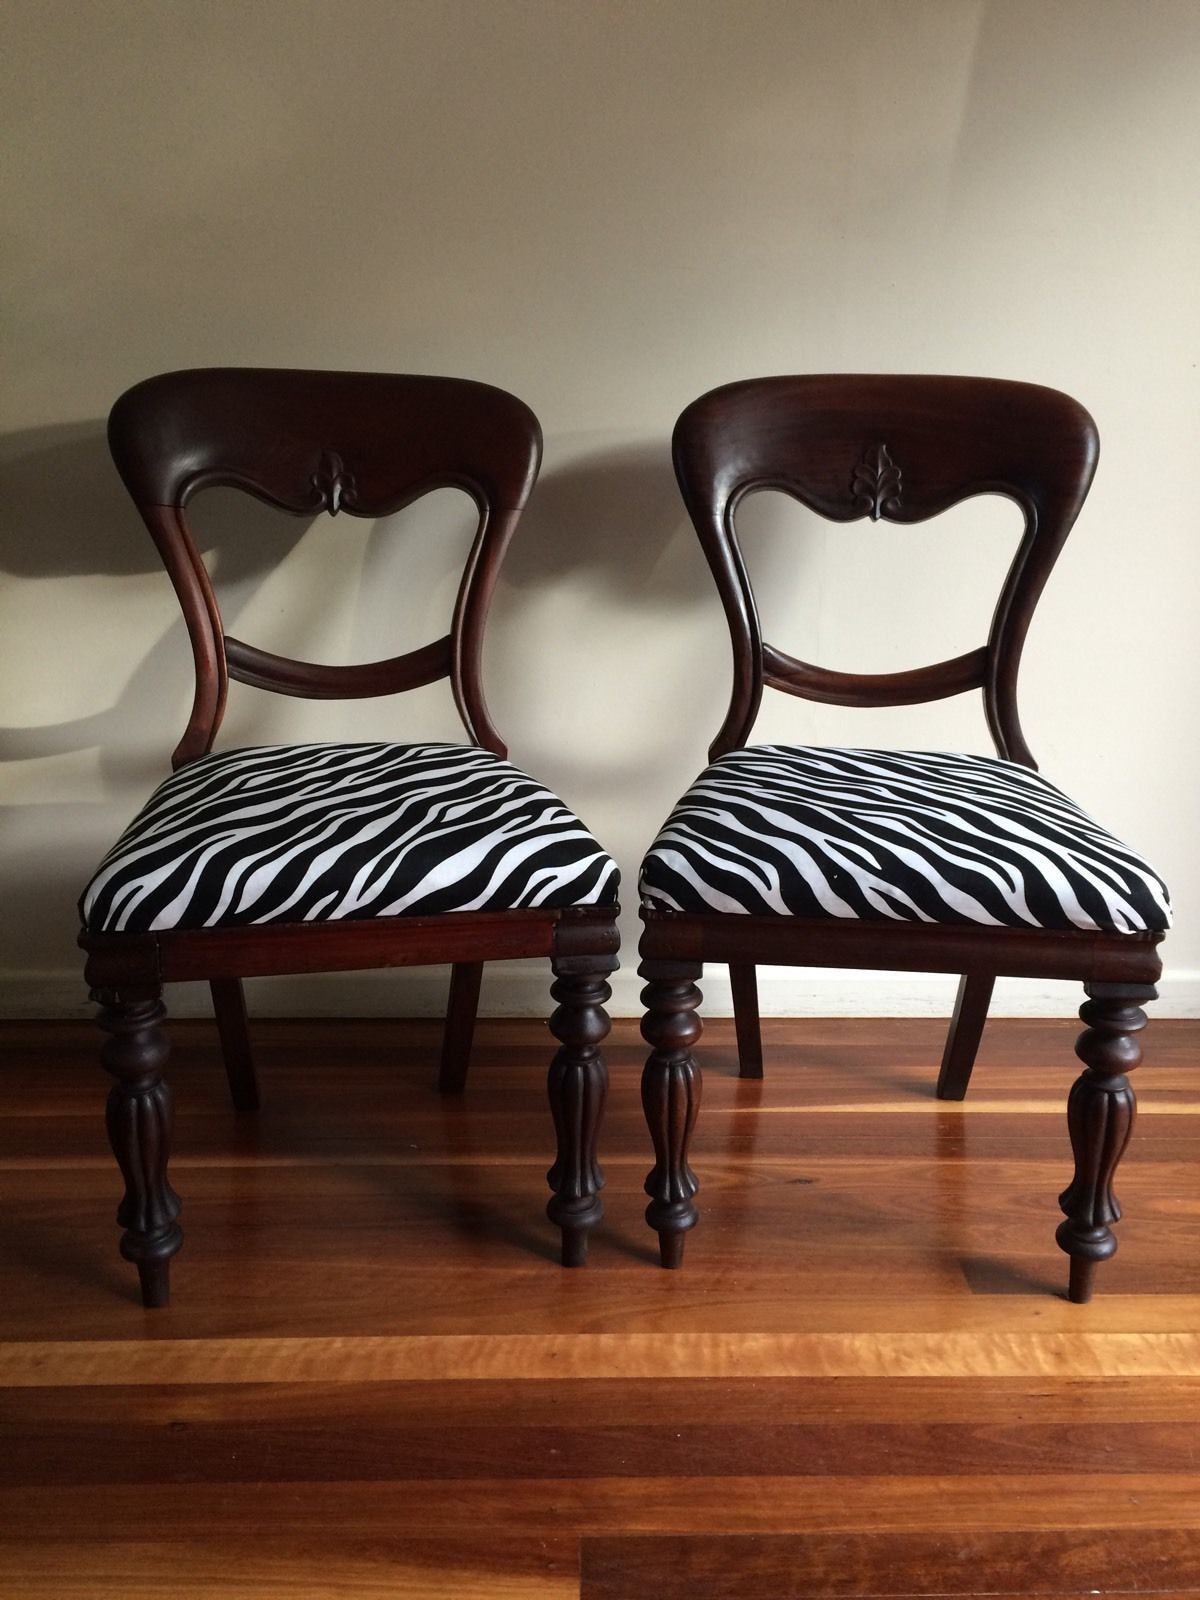 2 Balloon Back Dining Occasional Bedroom Antique Chairs in QLD | eBay - 2 Balloon Back Dining Occasional Bedroom Antique Chairs In QLD